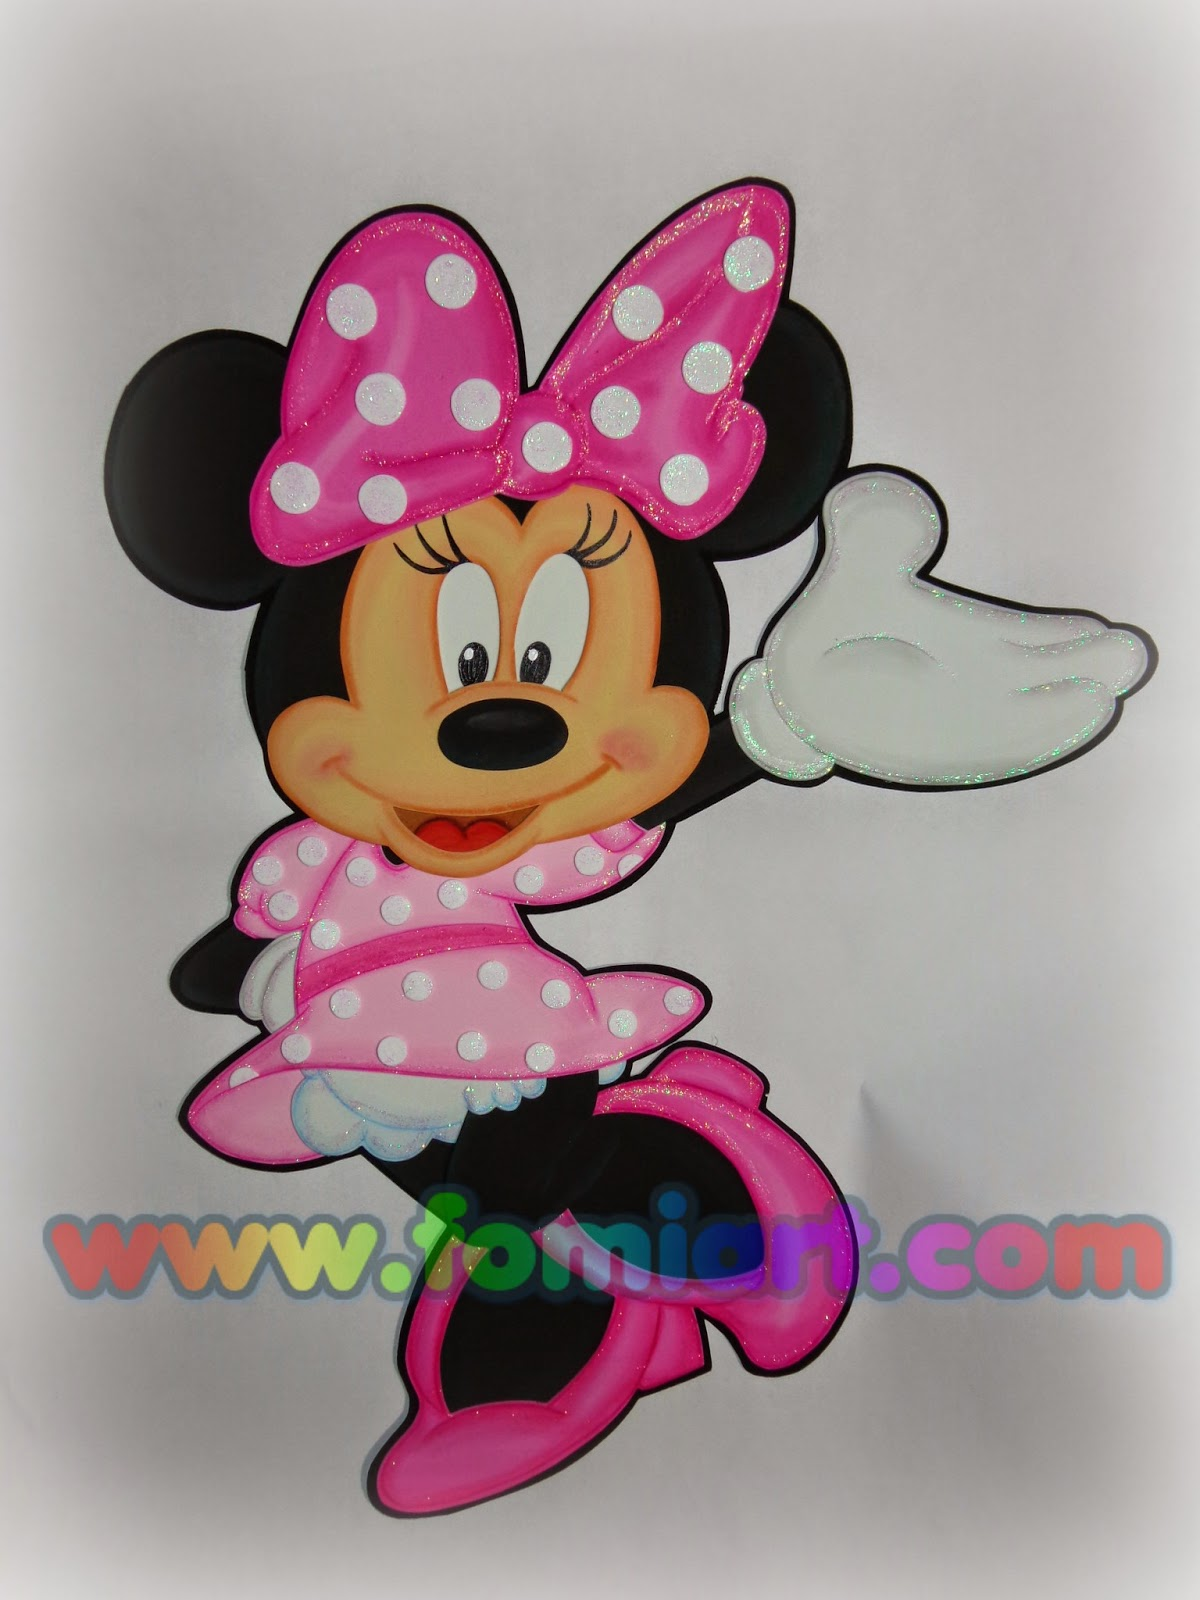 Decorado en fomi de Minnie Mouse